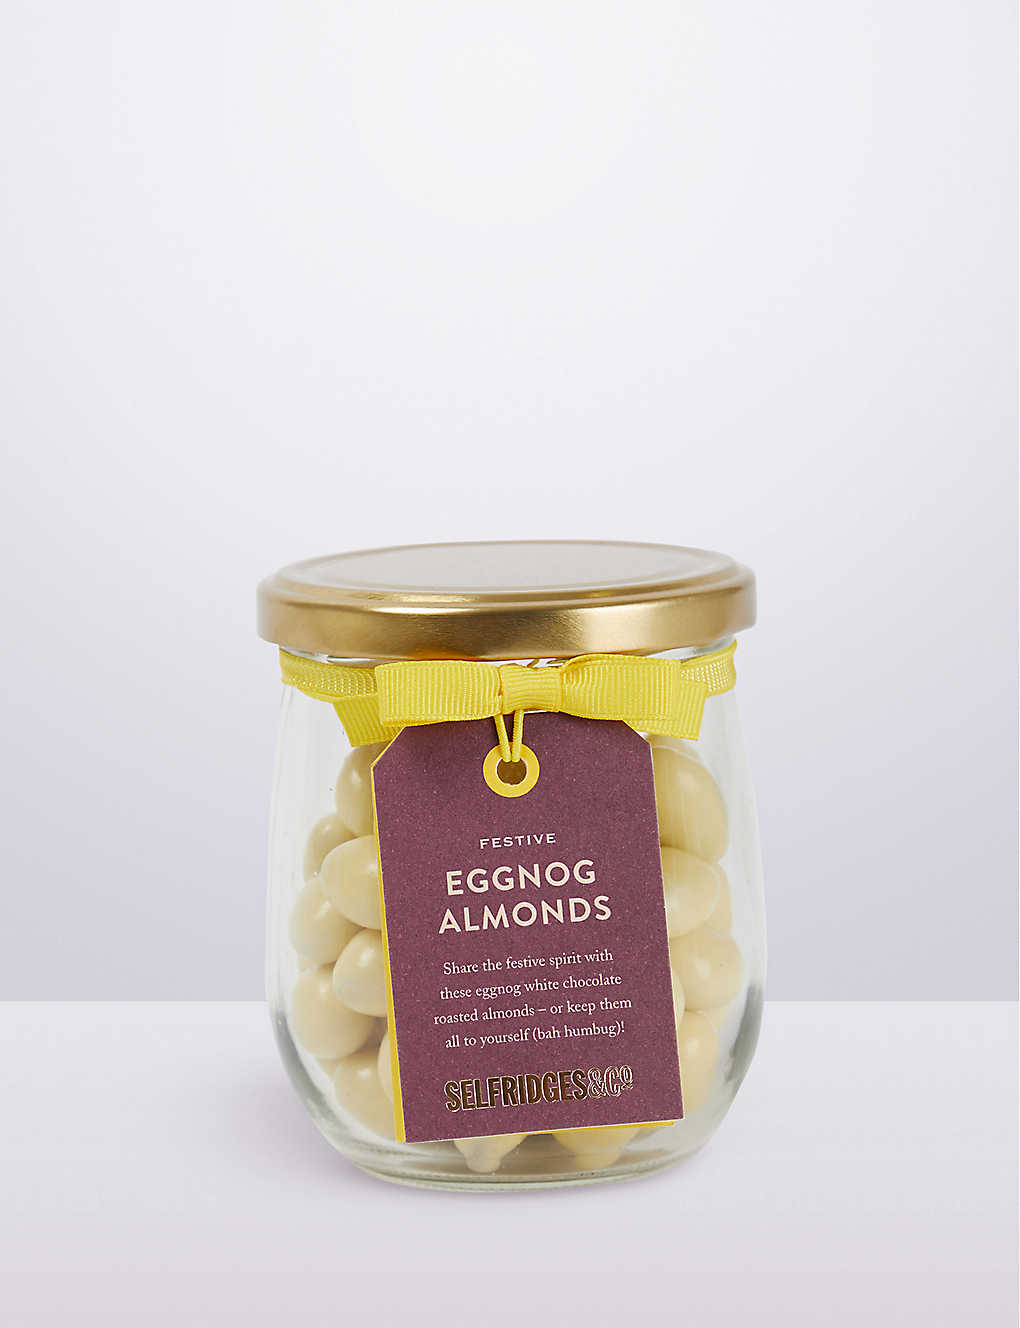 SELFRIDGES SELECTION: Festive Eggnog Almonds 200g